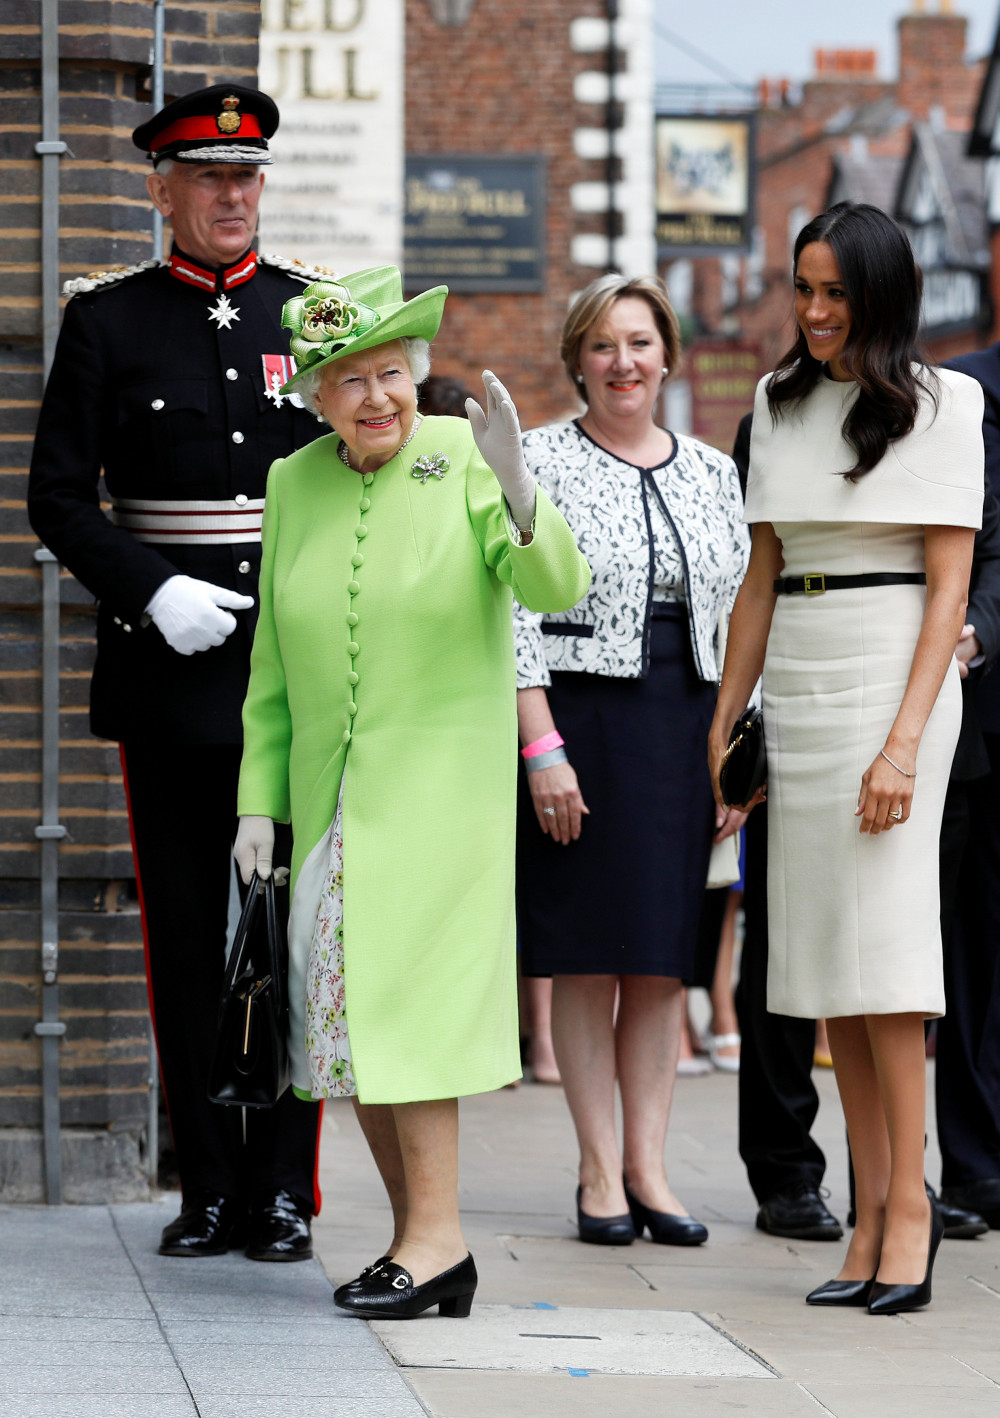 First Outing! Meghan, Duchess of Sussex & Queen Elizabeth II team up for Royal Visit to Cheshire